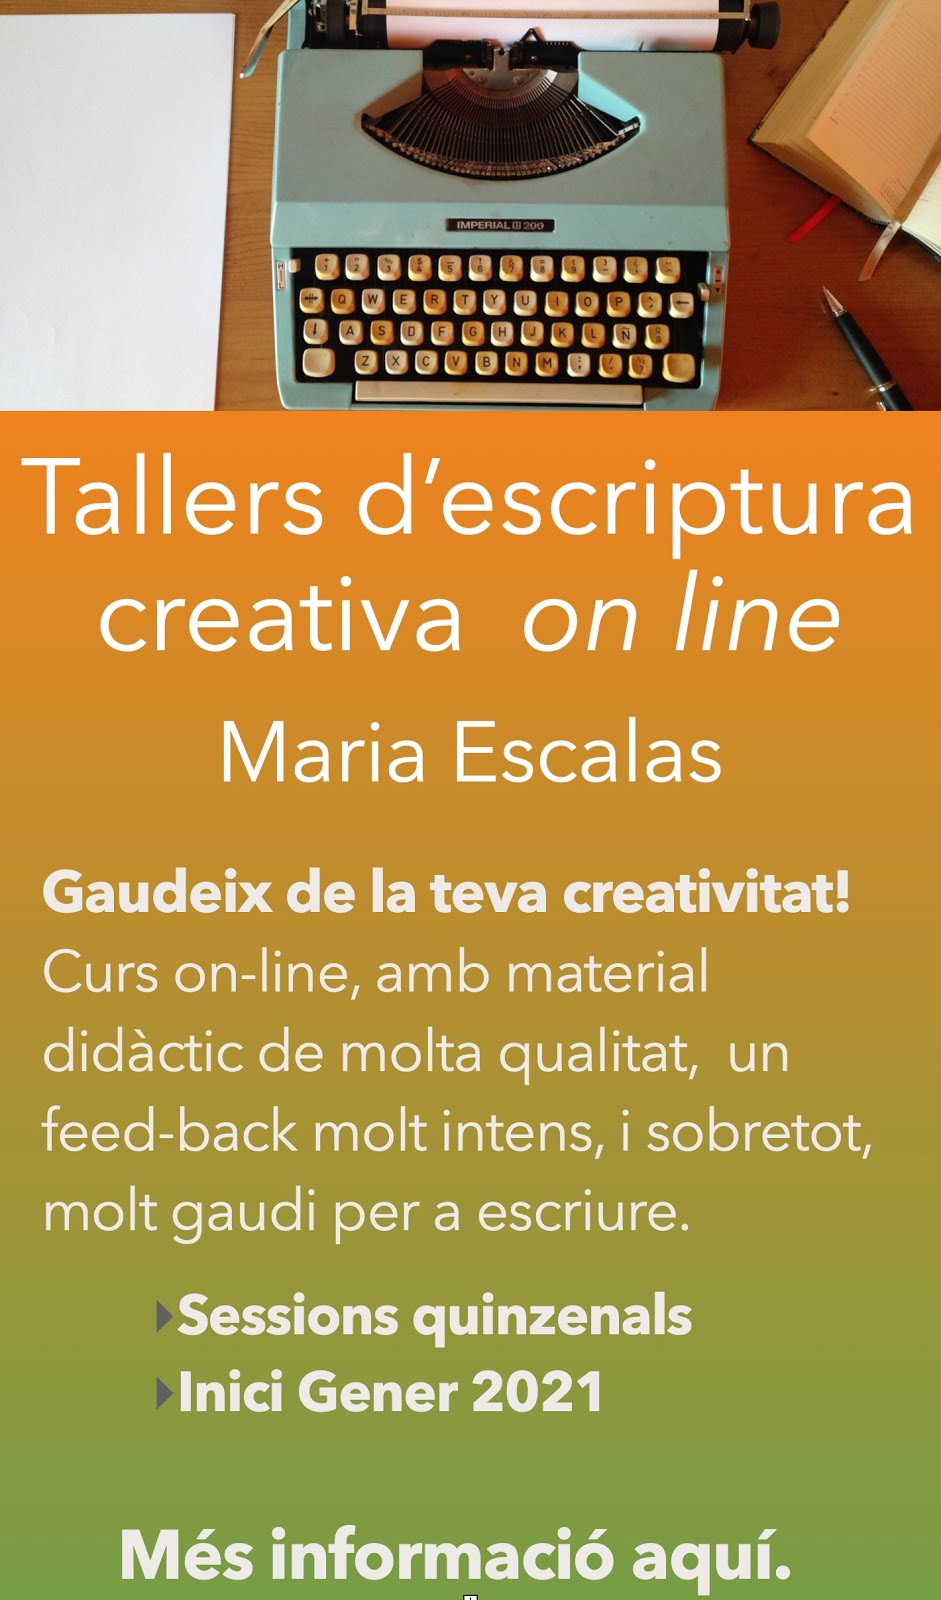 Tallers d'escriptura creativa on-line